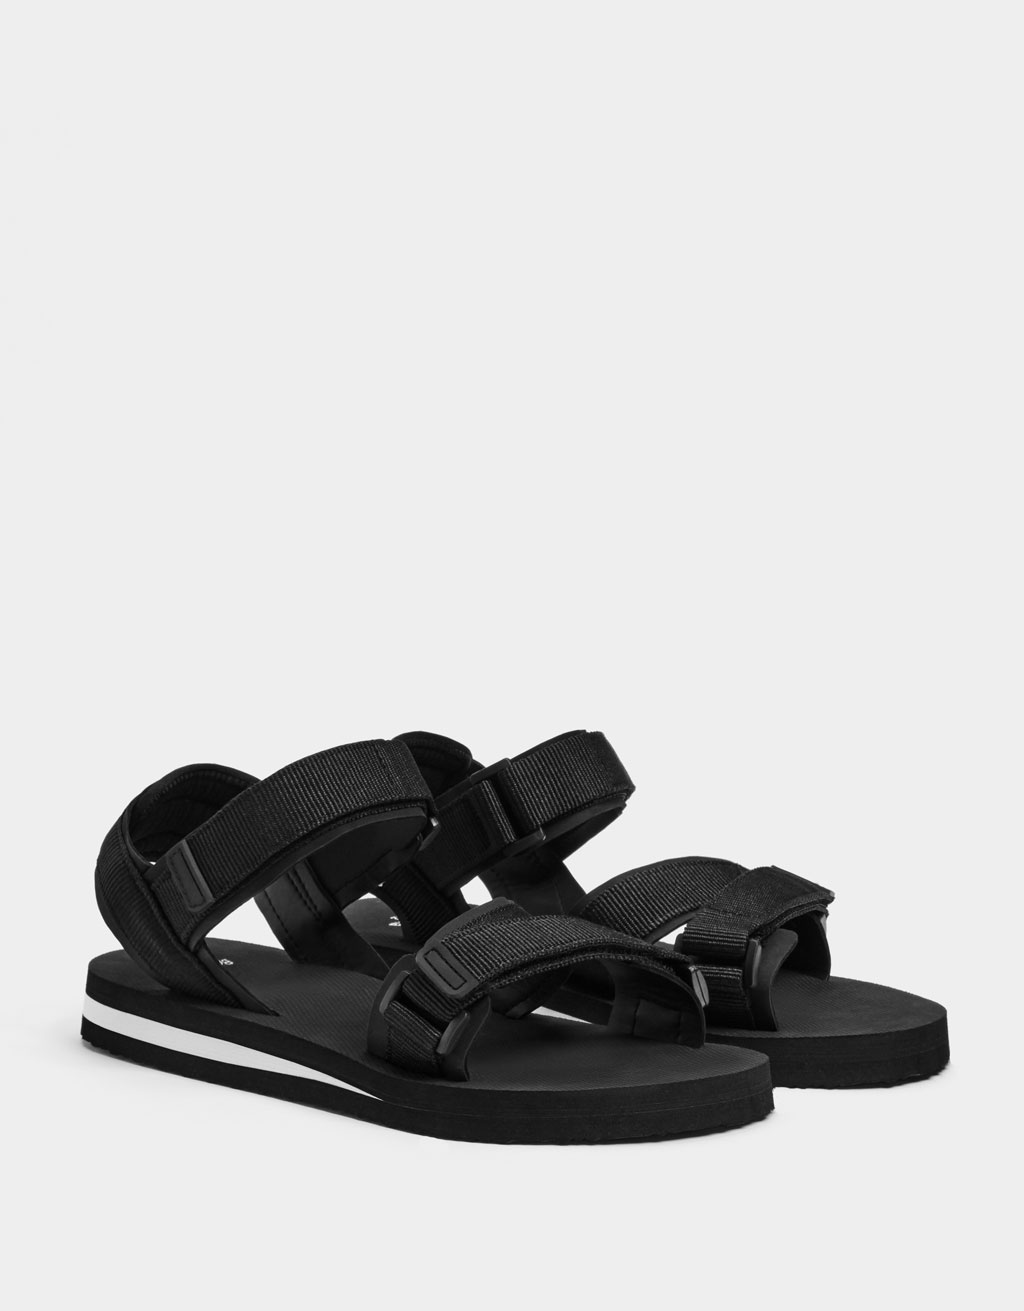 Men's technical sandals